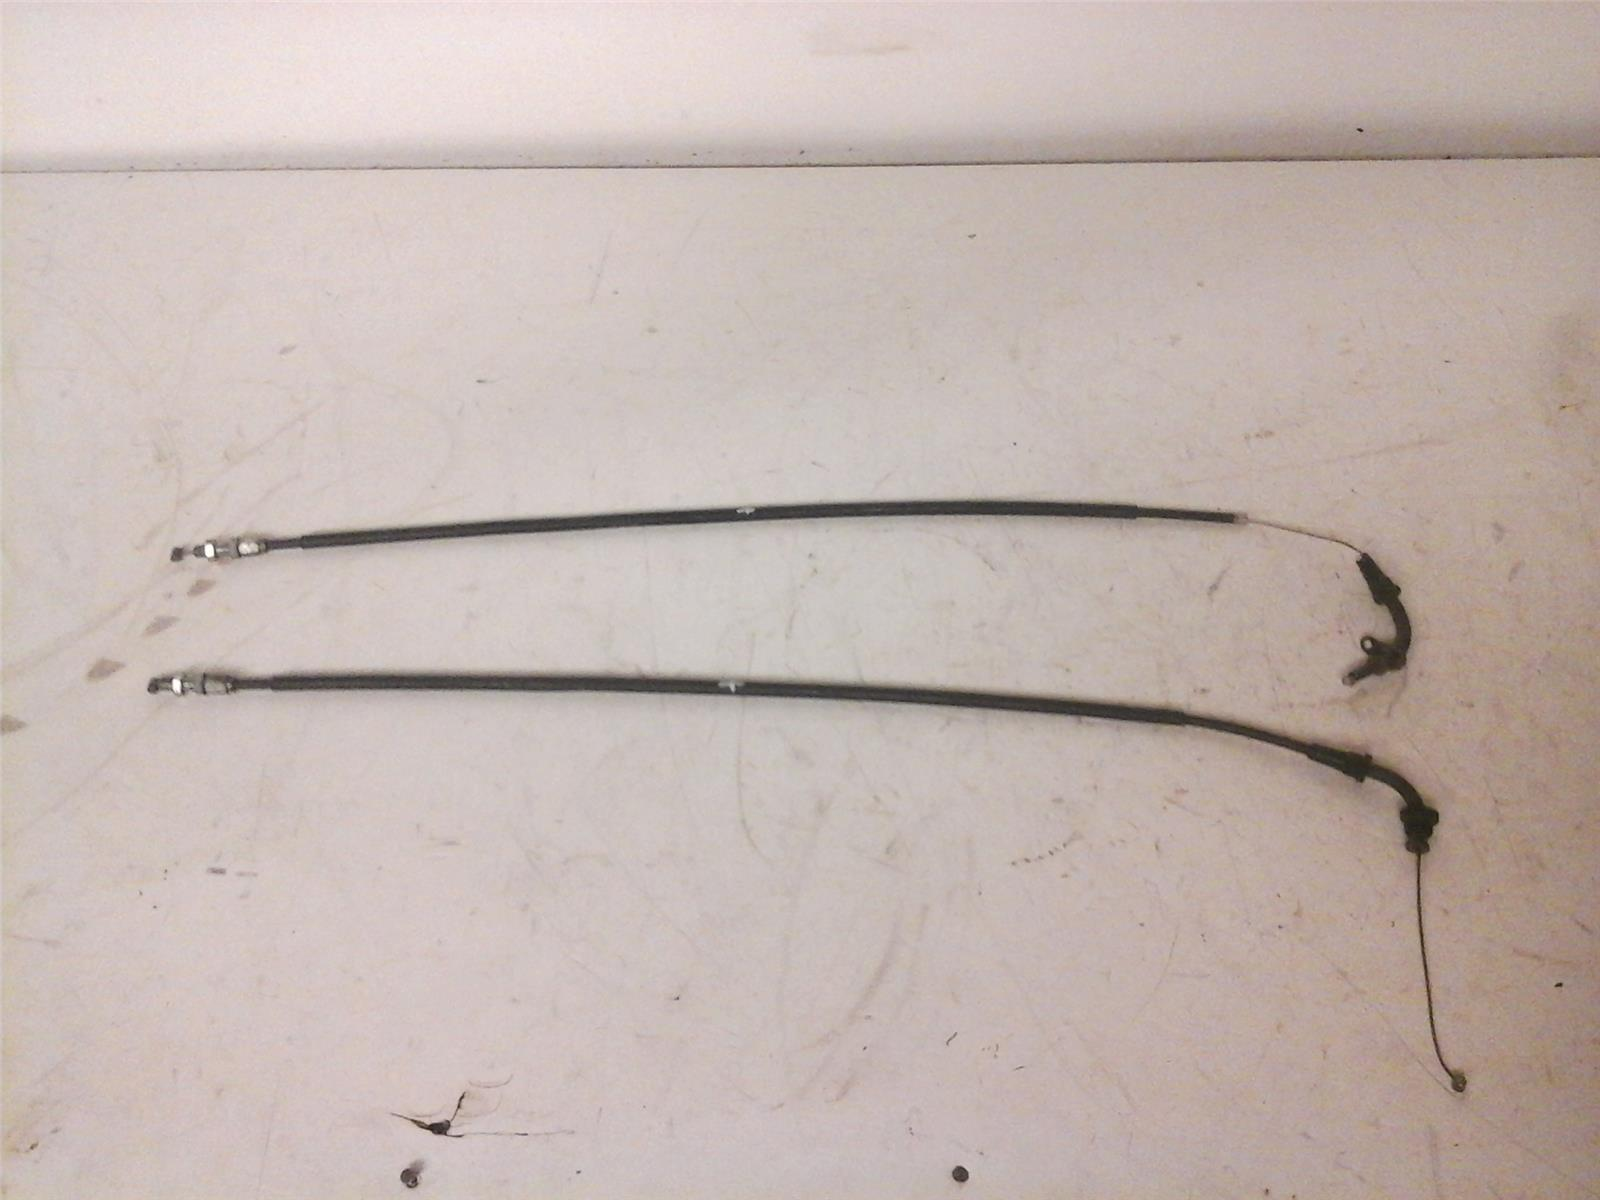 2004 Suzuki Gsxr 750 K4 Throttle Cable For Sale From Scb Motorcycles